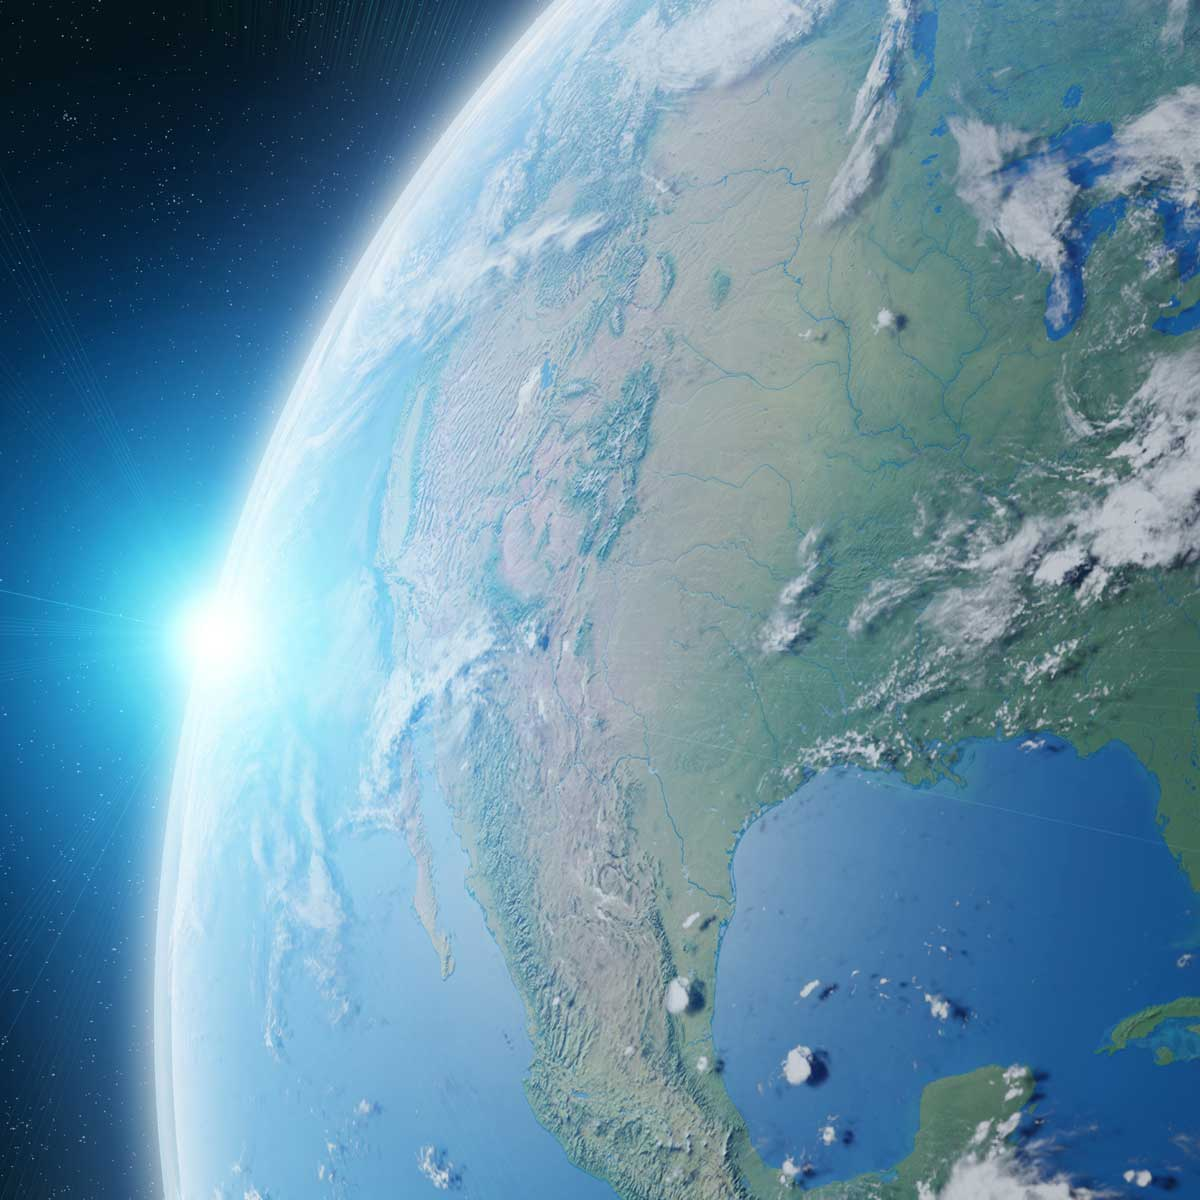 image of 3D earth from space